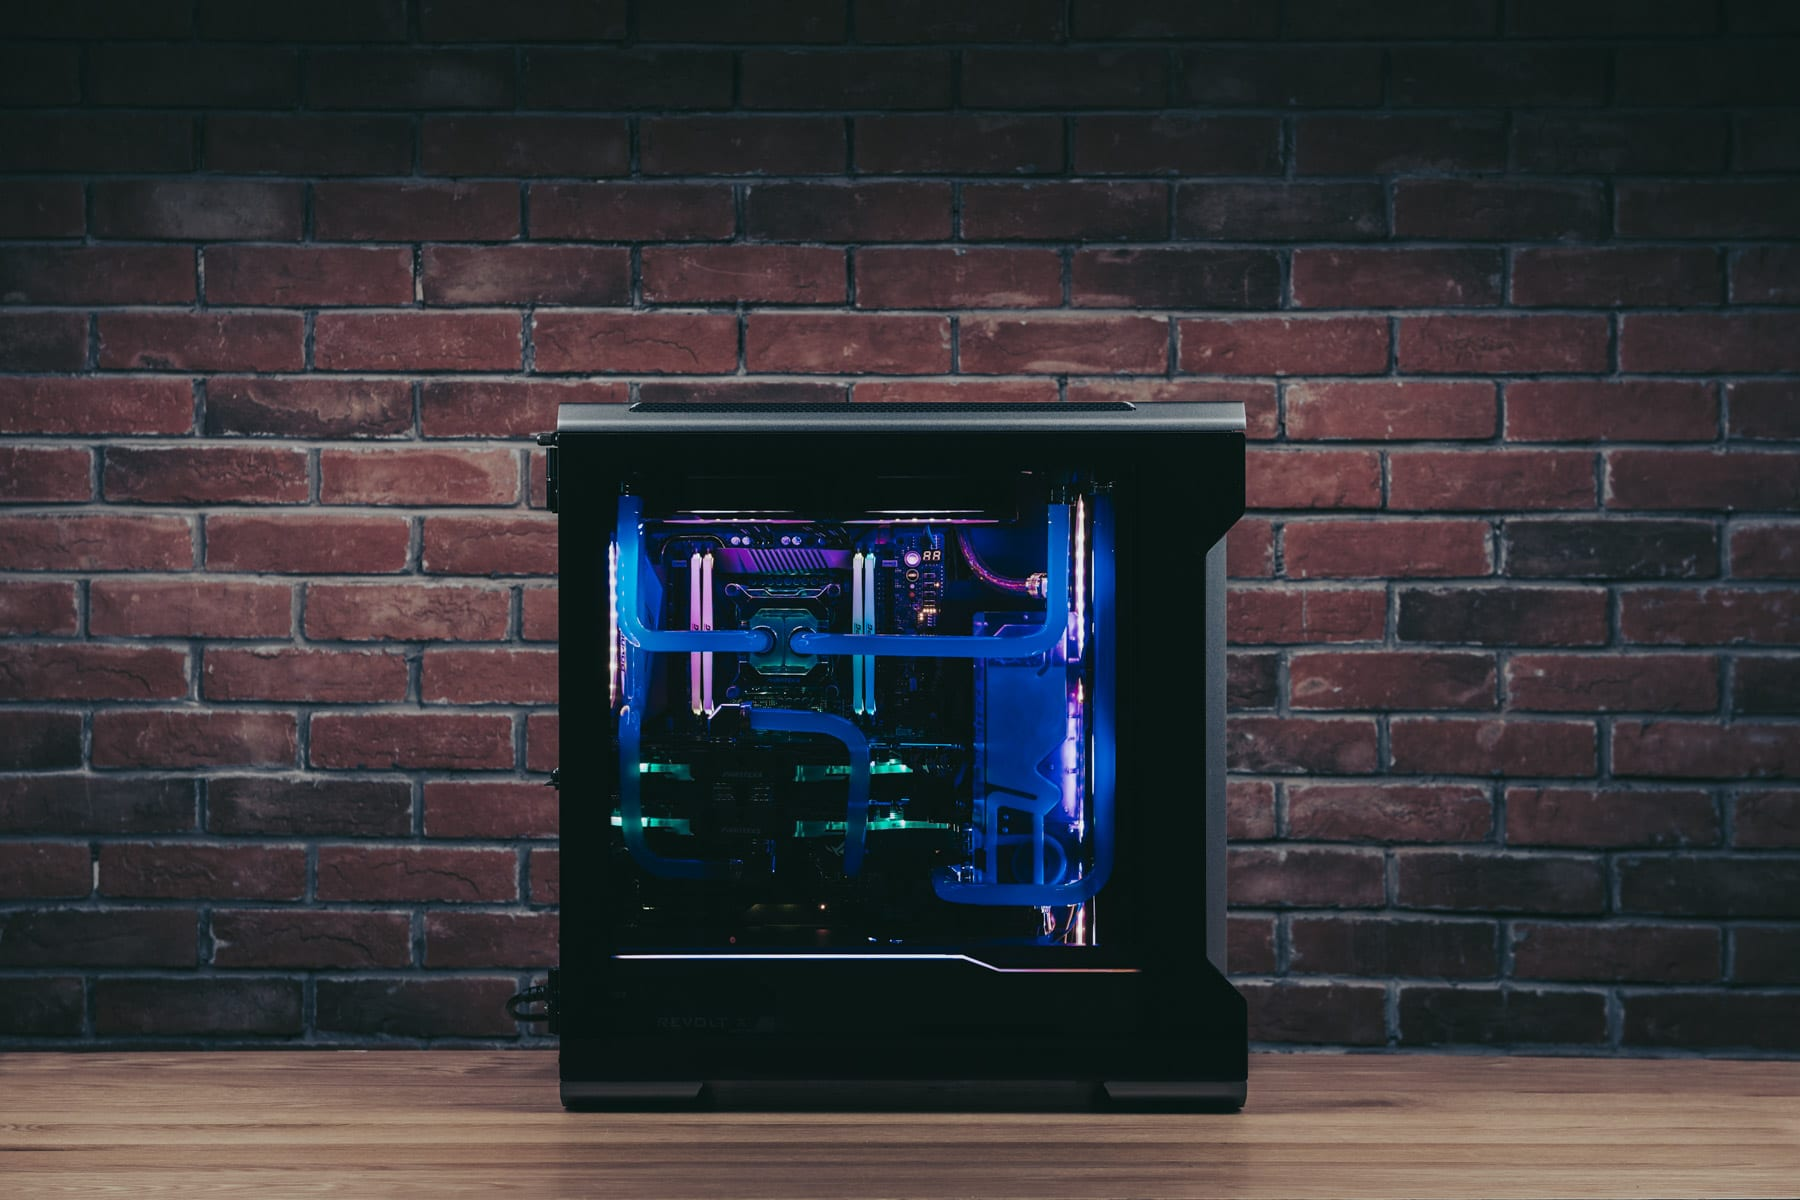 Phanteks_EvolvX15363